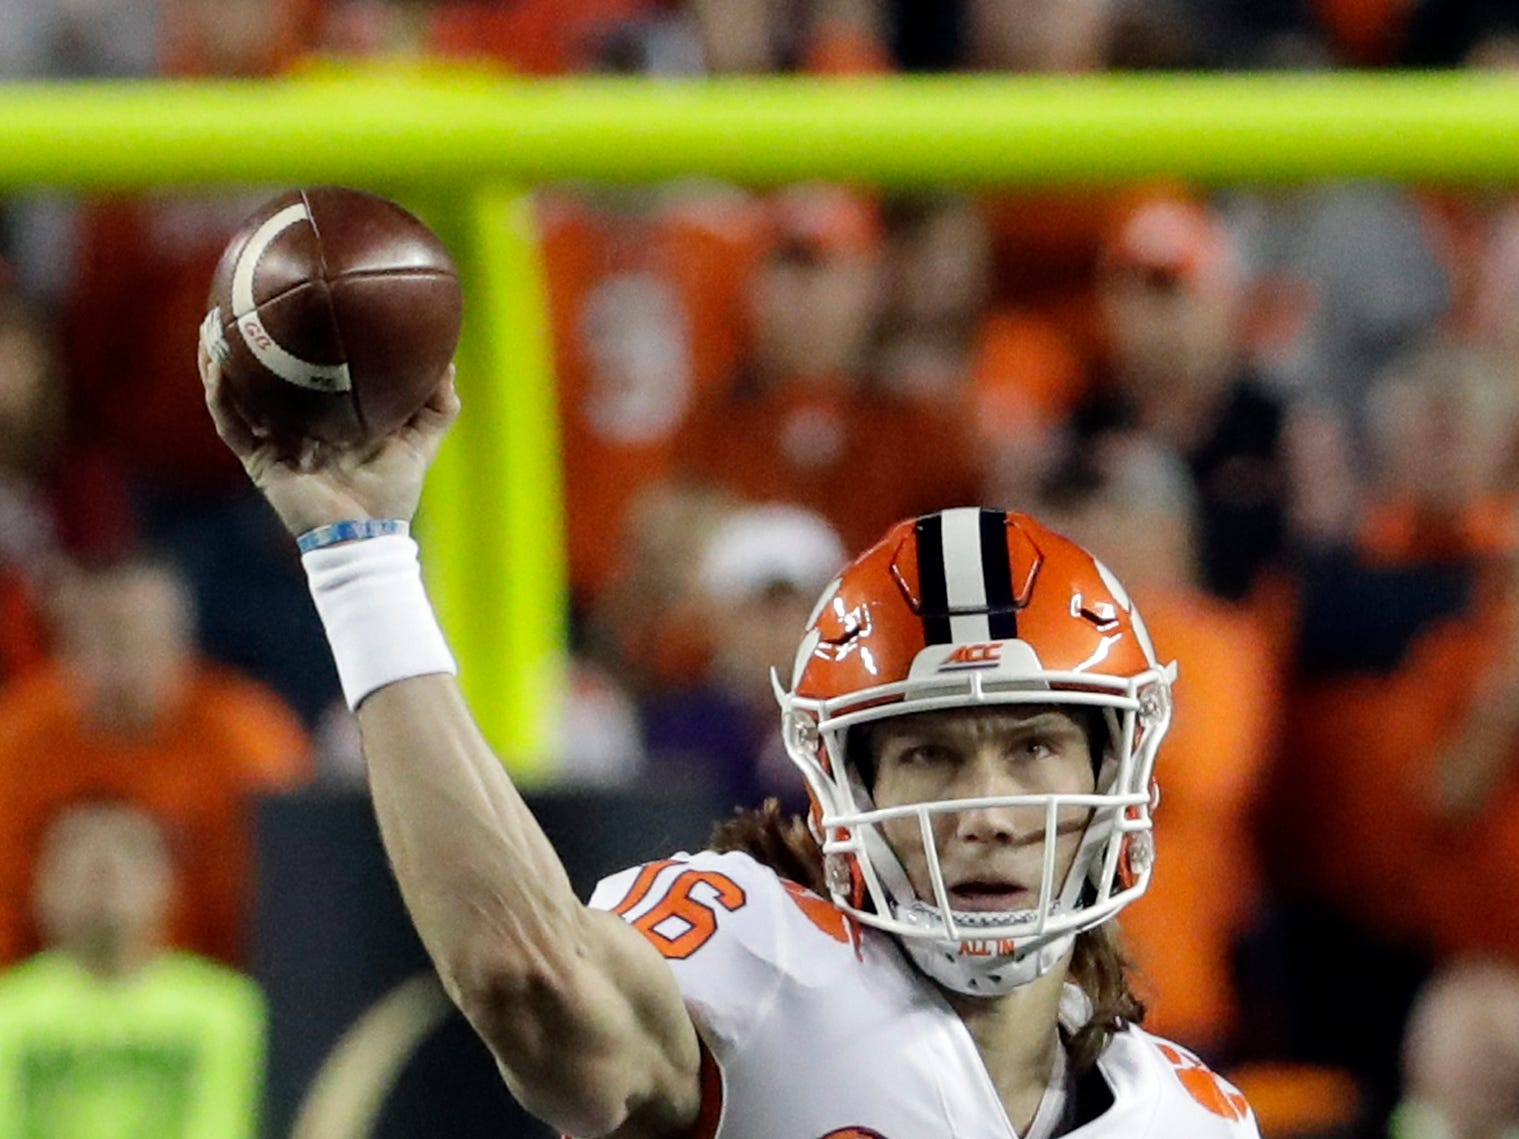 Clemson's Trevor Lawrence throws during the first half of the NCAA college football playoff championship game against Alabama, Monday, Jan. 7, 2019, in Santa Clara, Calif. (AP Photo/Chris Carlson)